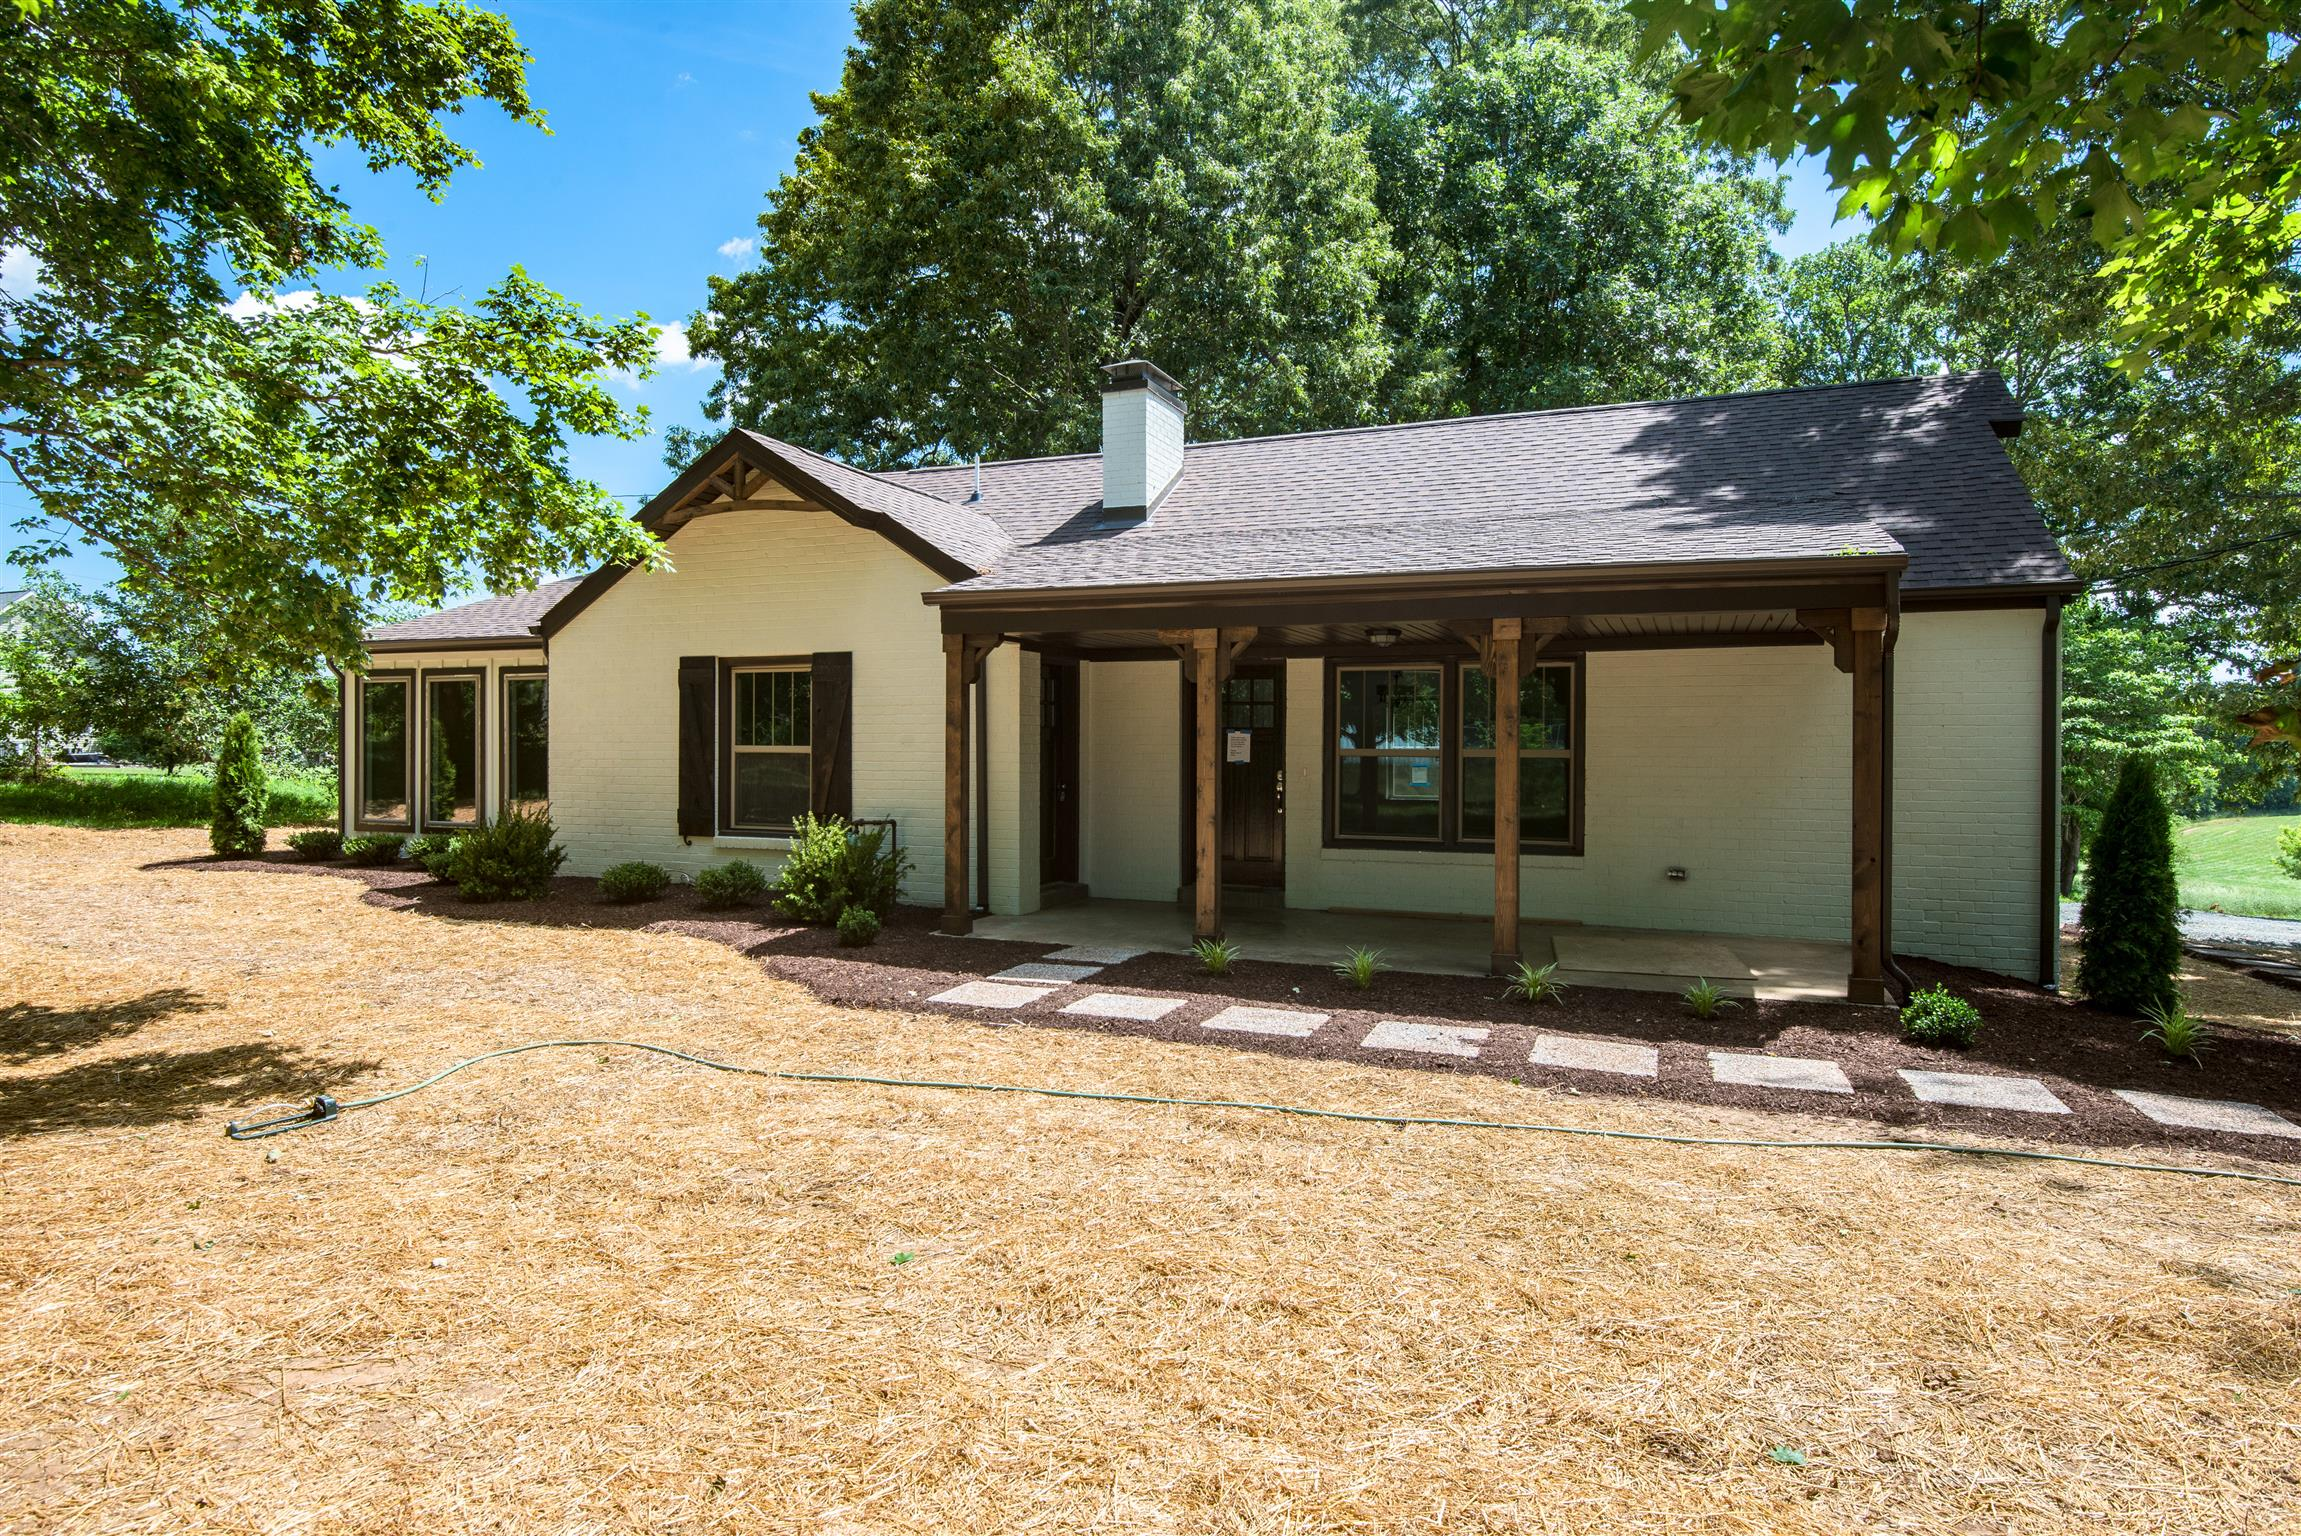 2665 Spencer Mill Rd, Bon Aqua, TN 37025 - Bon Aqua, TN real estate listing